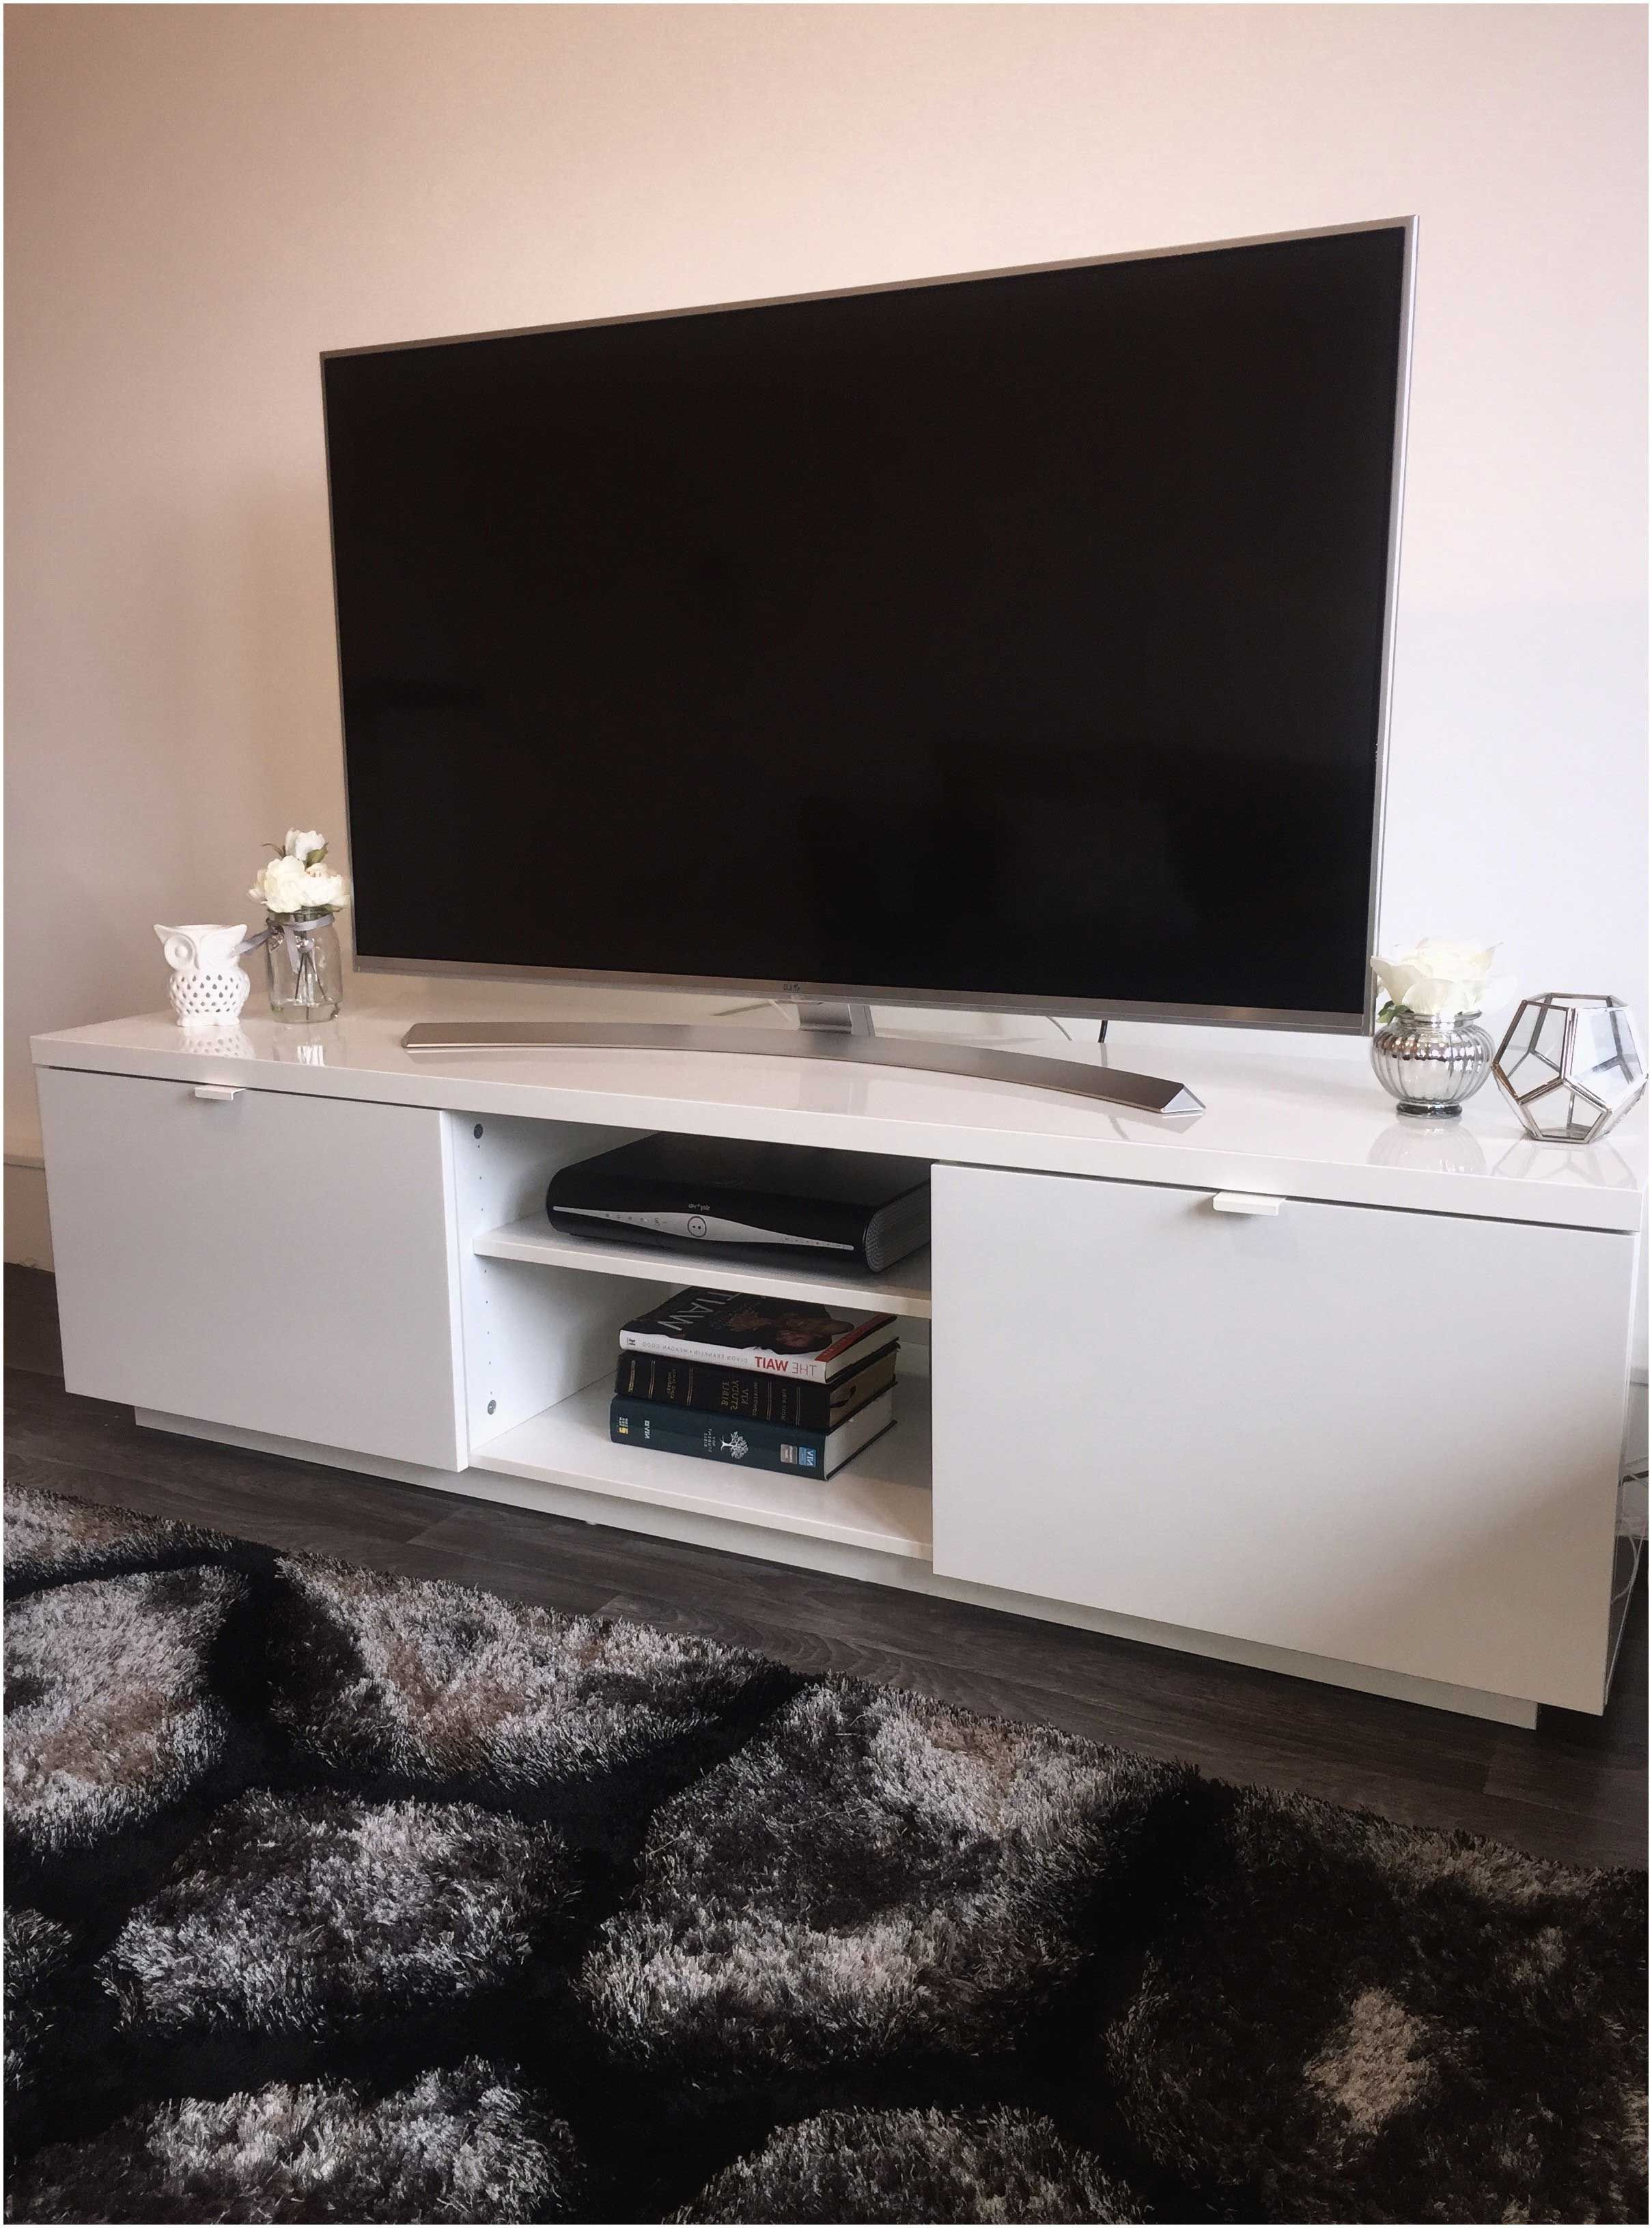 Meuble Tv Suspendu Blanc Meuble Tv Suspendu Ikea 20 Awesome Meuble